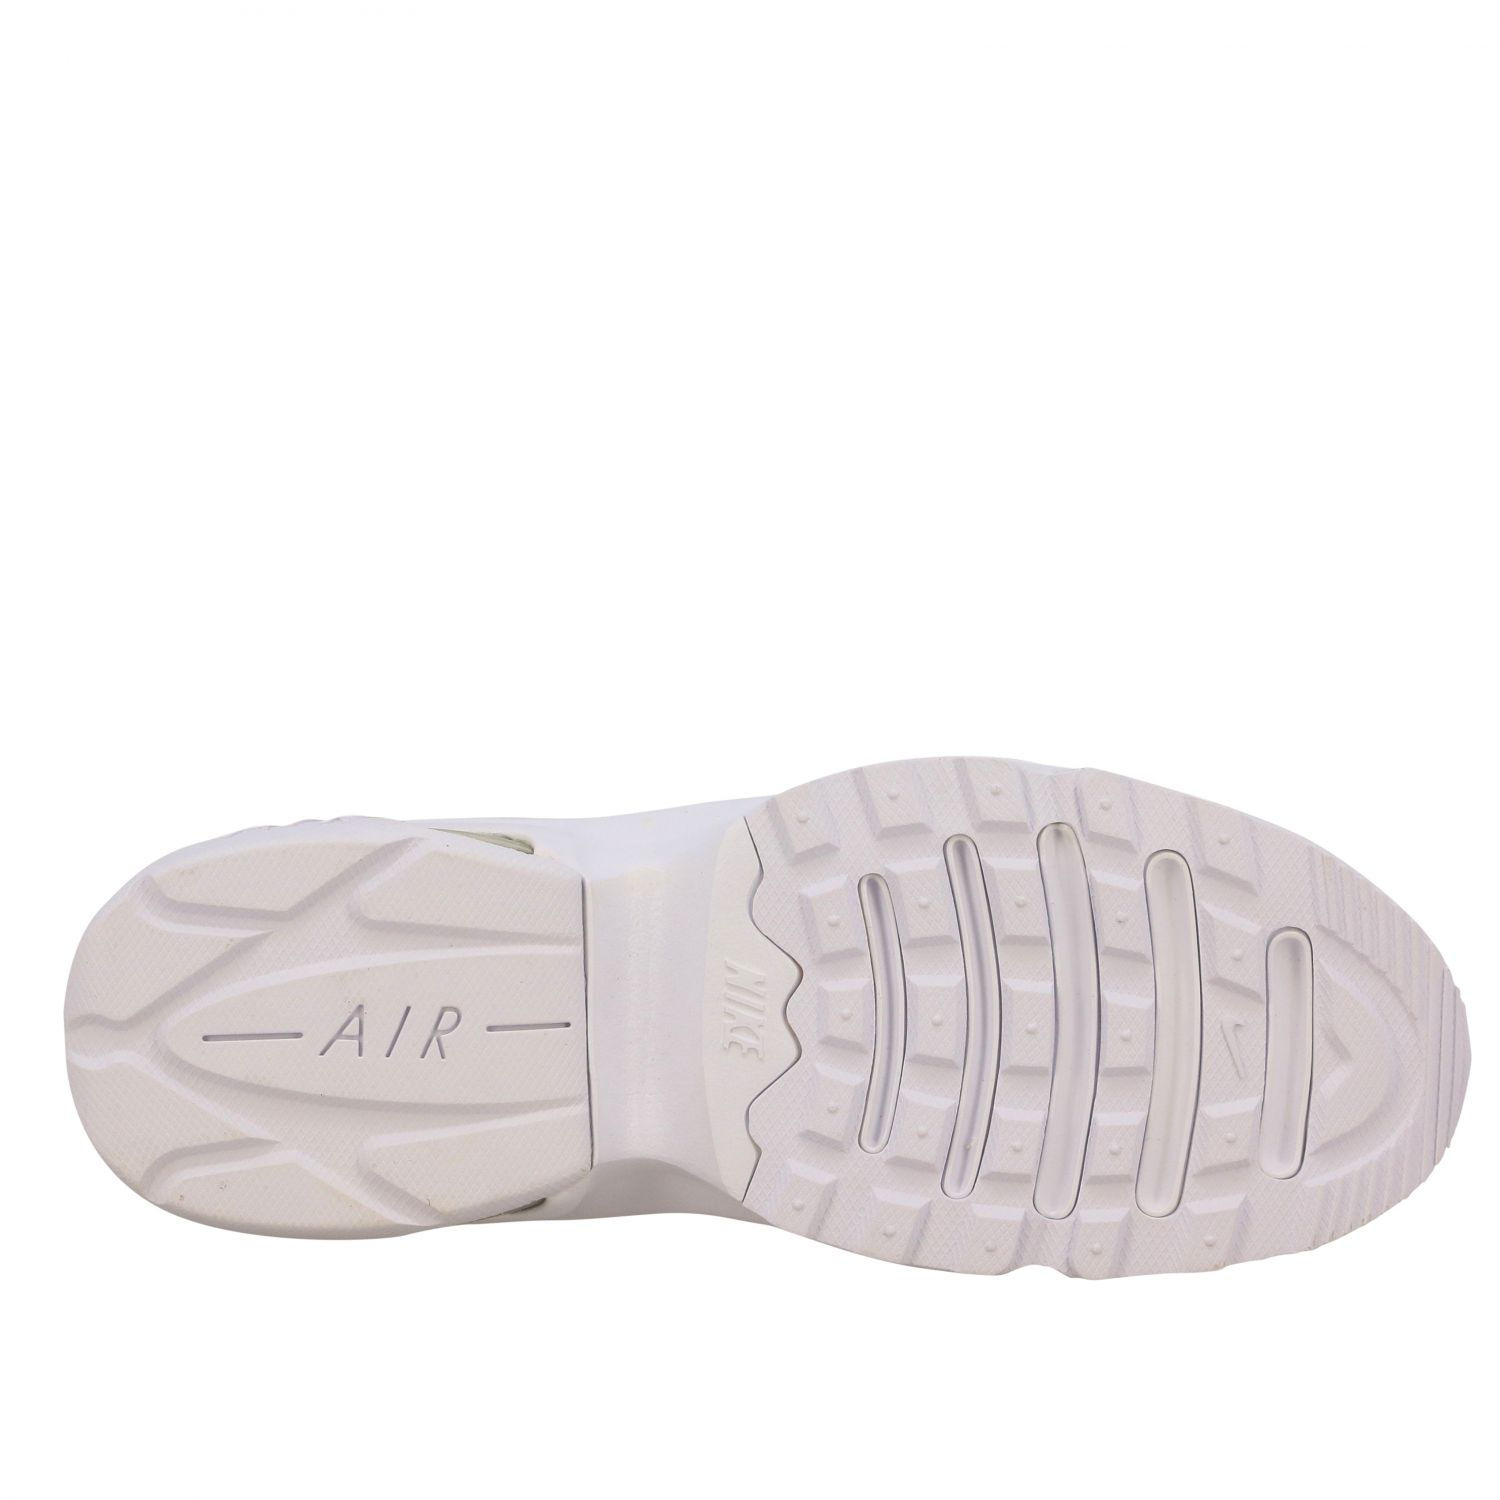 Chaussures homme Nike blanc 6